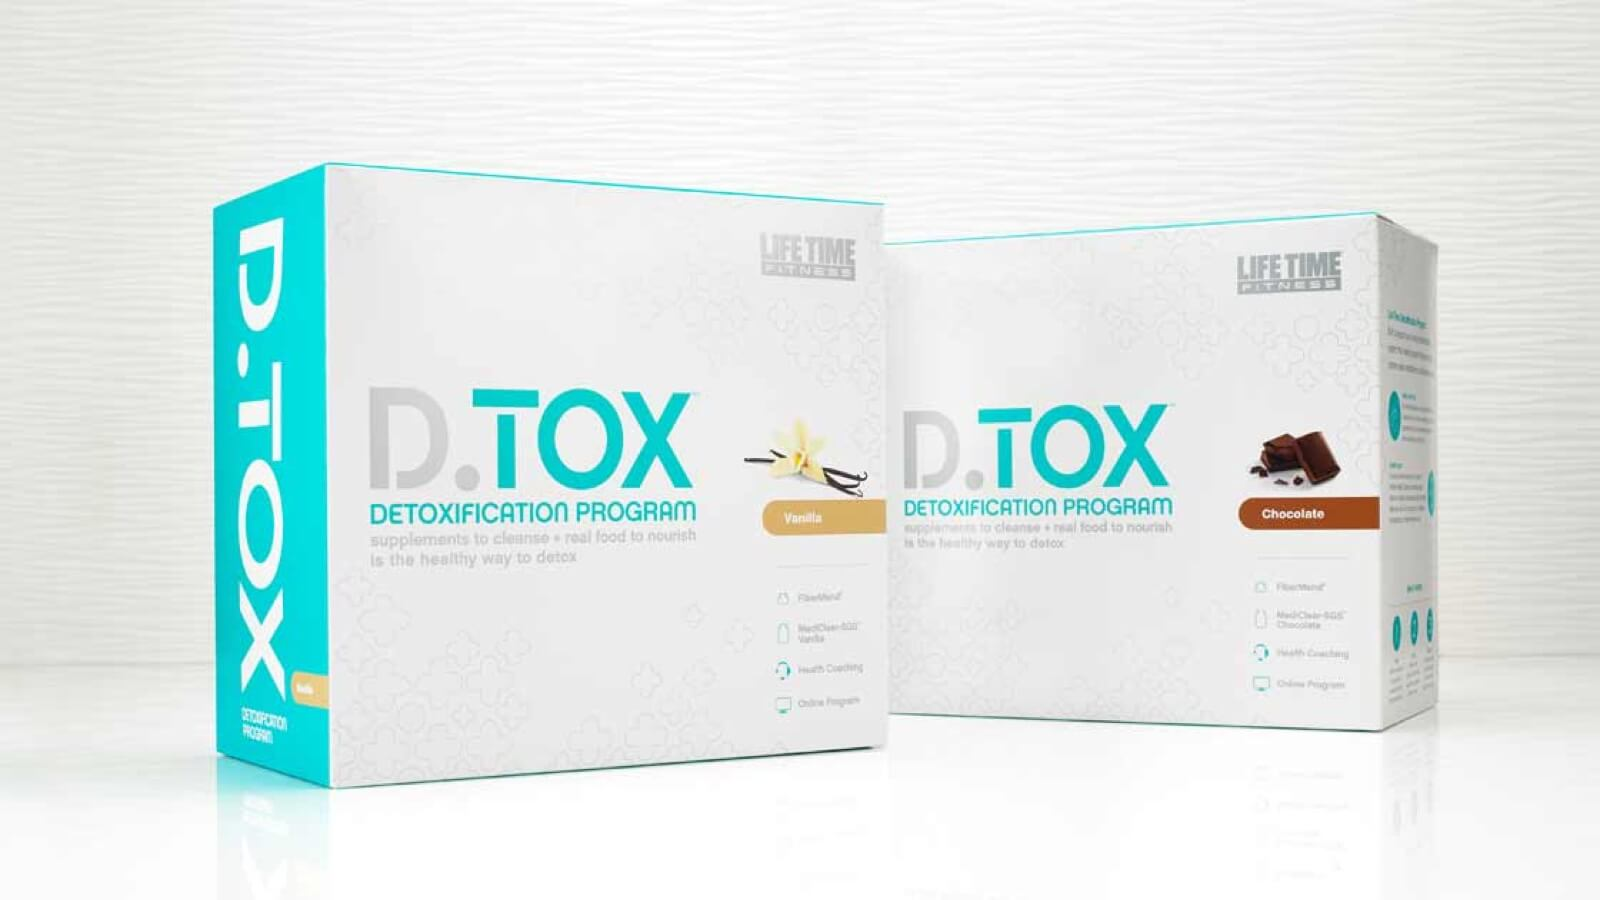 Two boxes of D.TOX products, representing vanilla and chocolate flavors